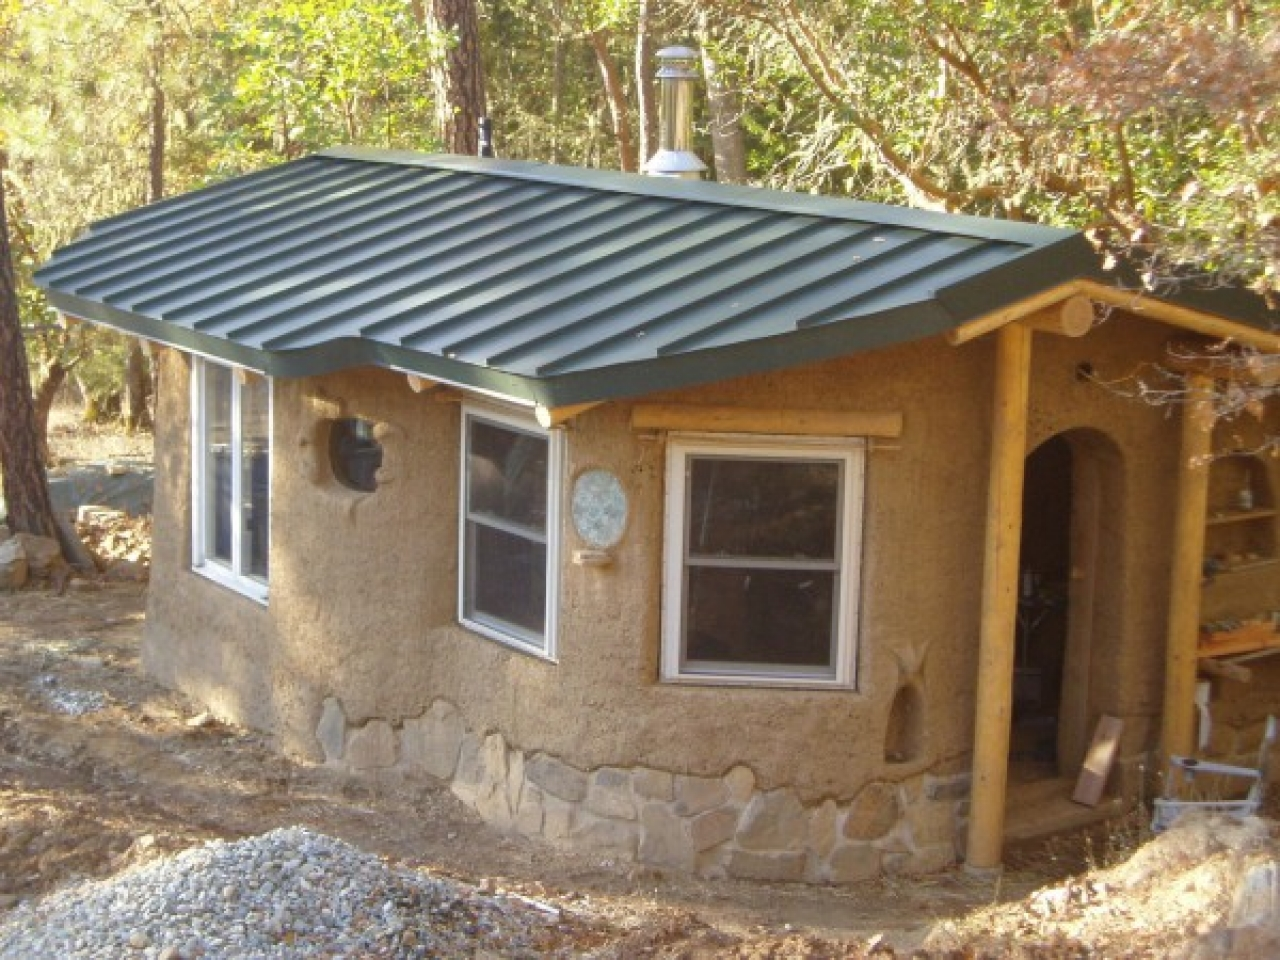 Tiny Home Designs: Cob Hobbit House Tiny Cob House, Tiny Cottages To Build